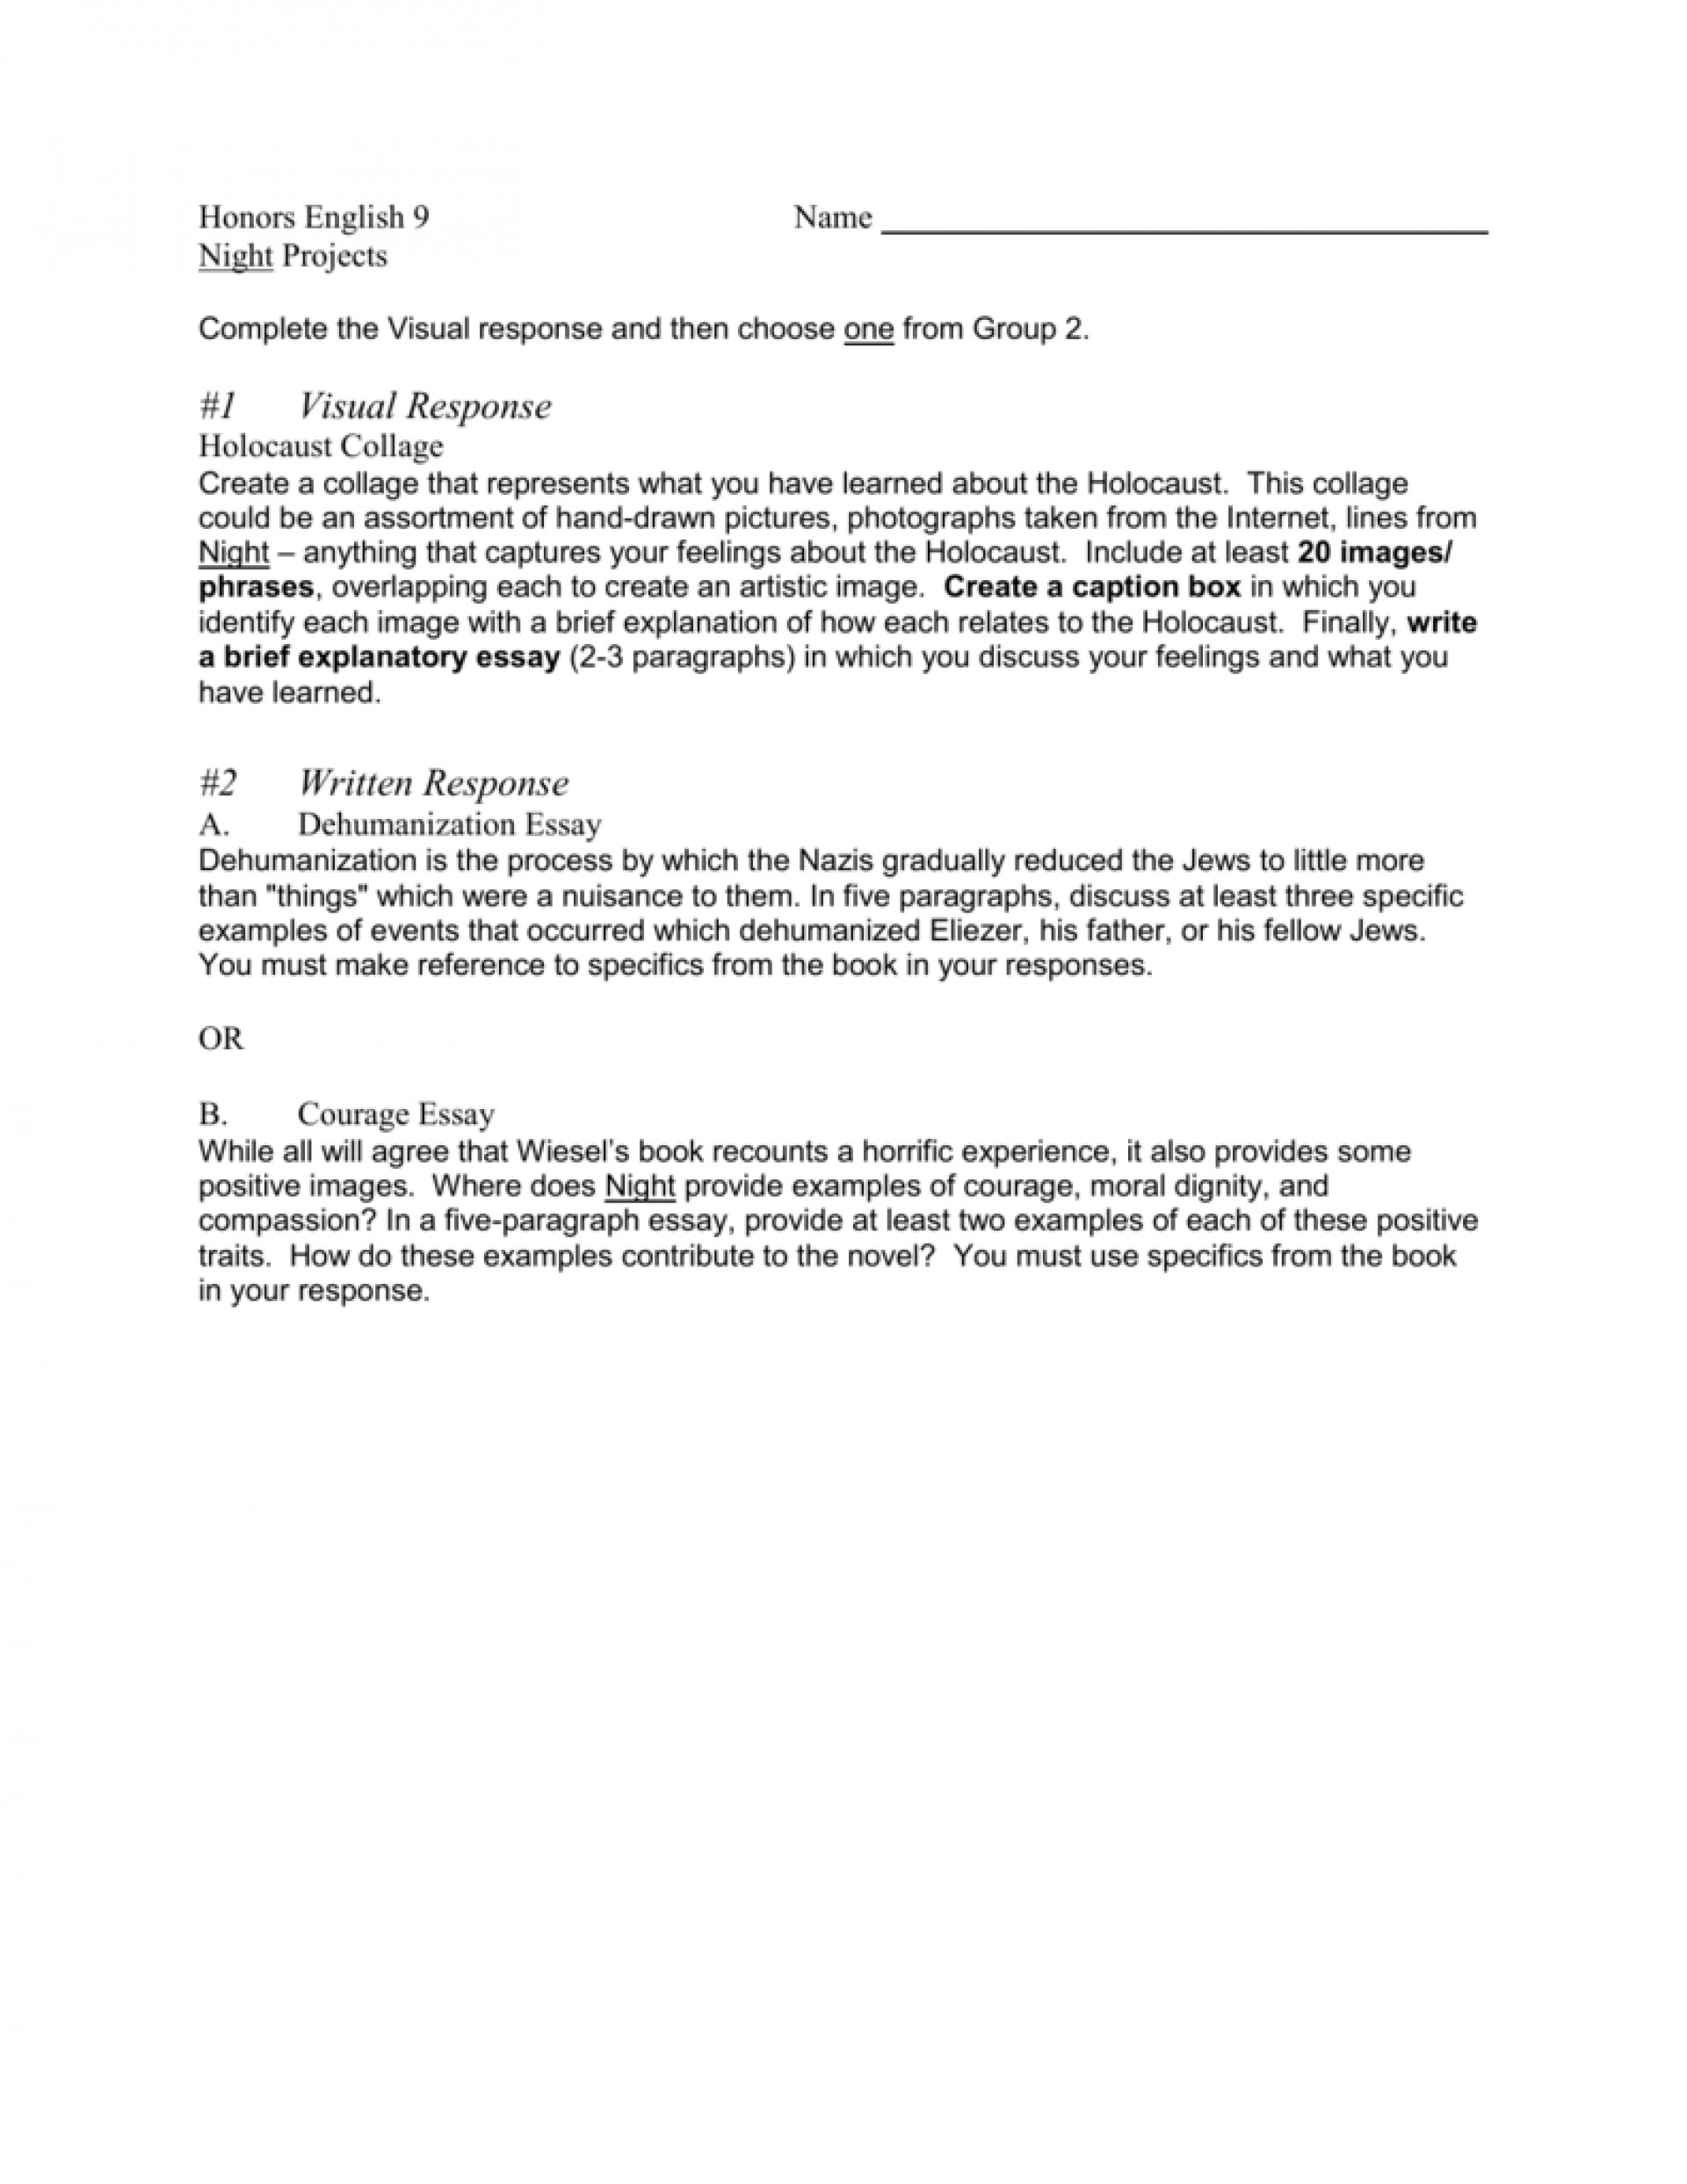 003 Essay Example Dehumanization In Night 008501396 1 Remarkable Conclusion 1920